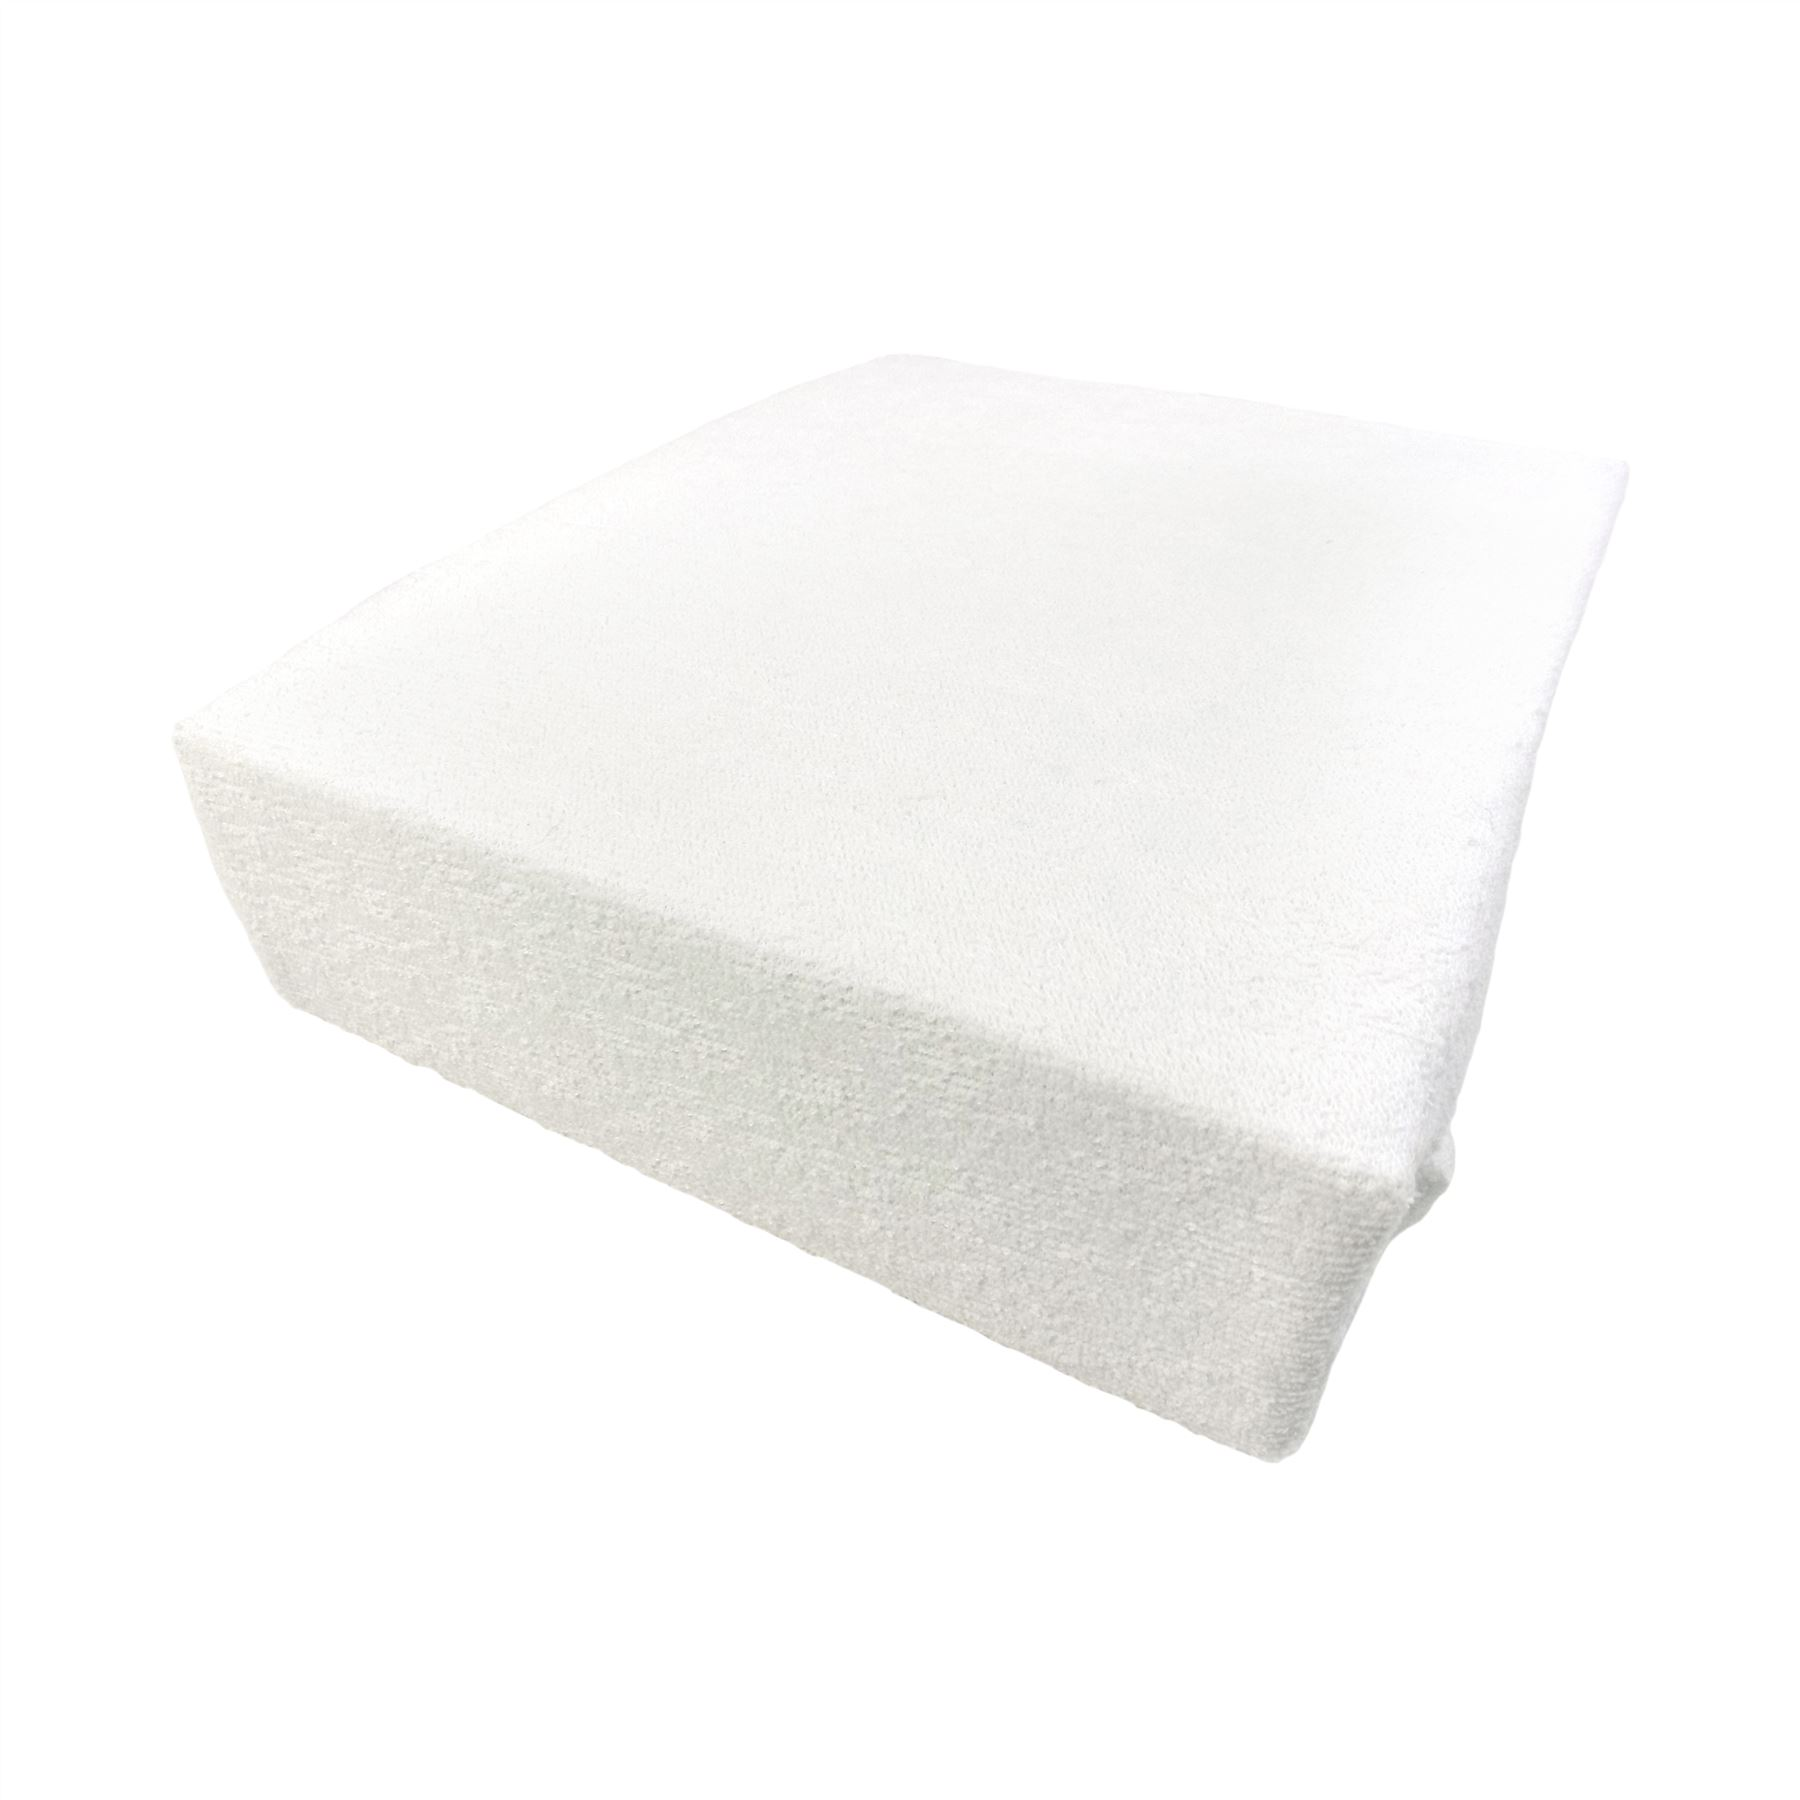 10 X HOTEL QUALITY WATERPROOF TERRY TOWEL DOUBLE MATTRESS PROTECTOR 135 X 190CM